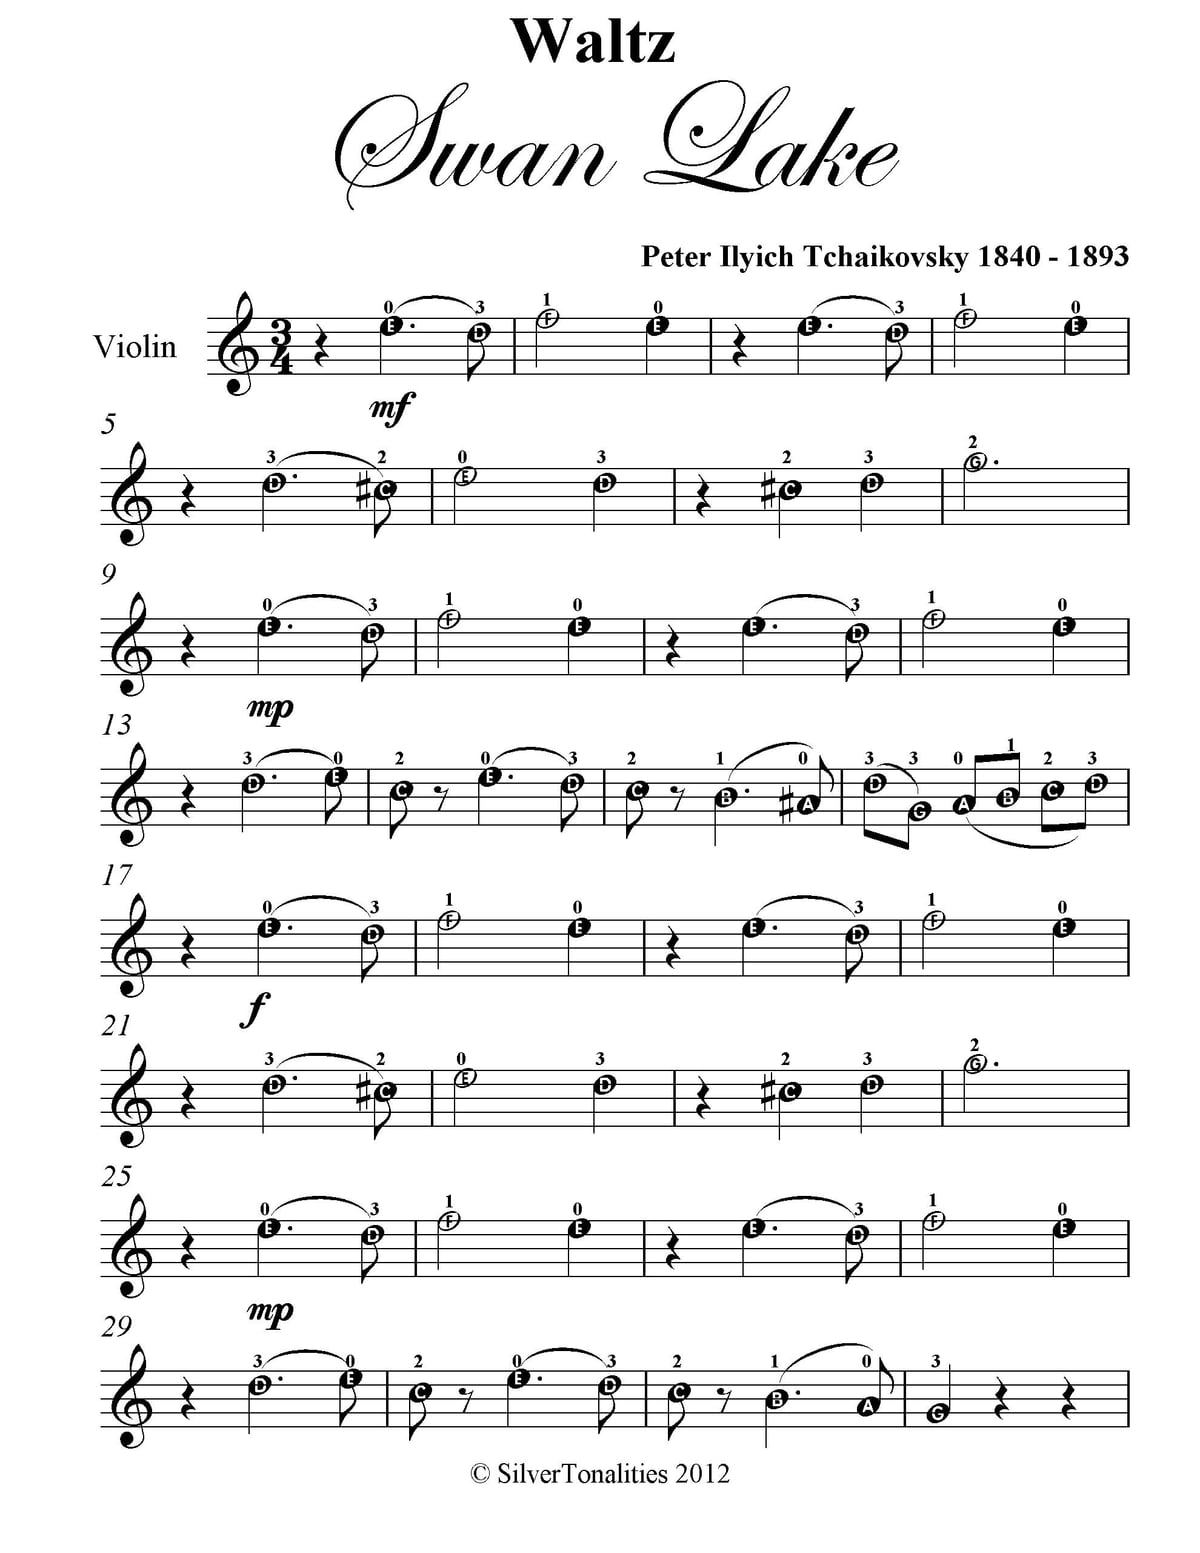 23 Free Violin Music Sheet Easy Printable Docx